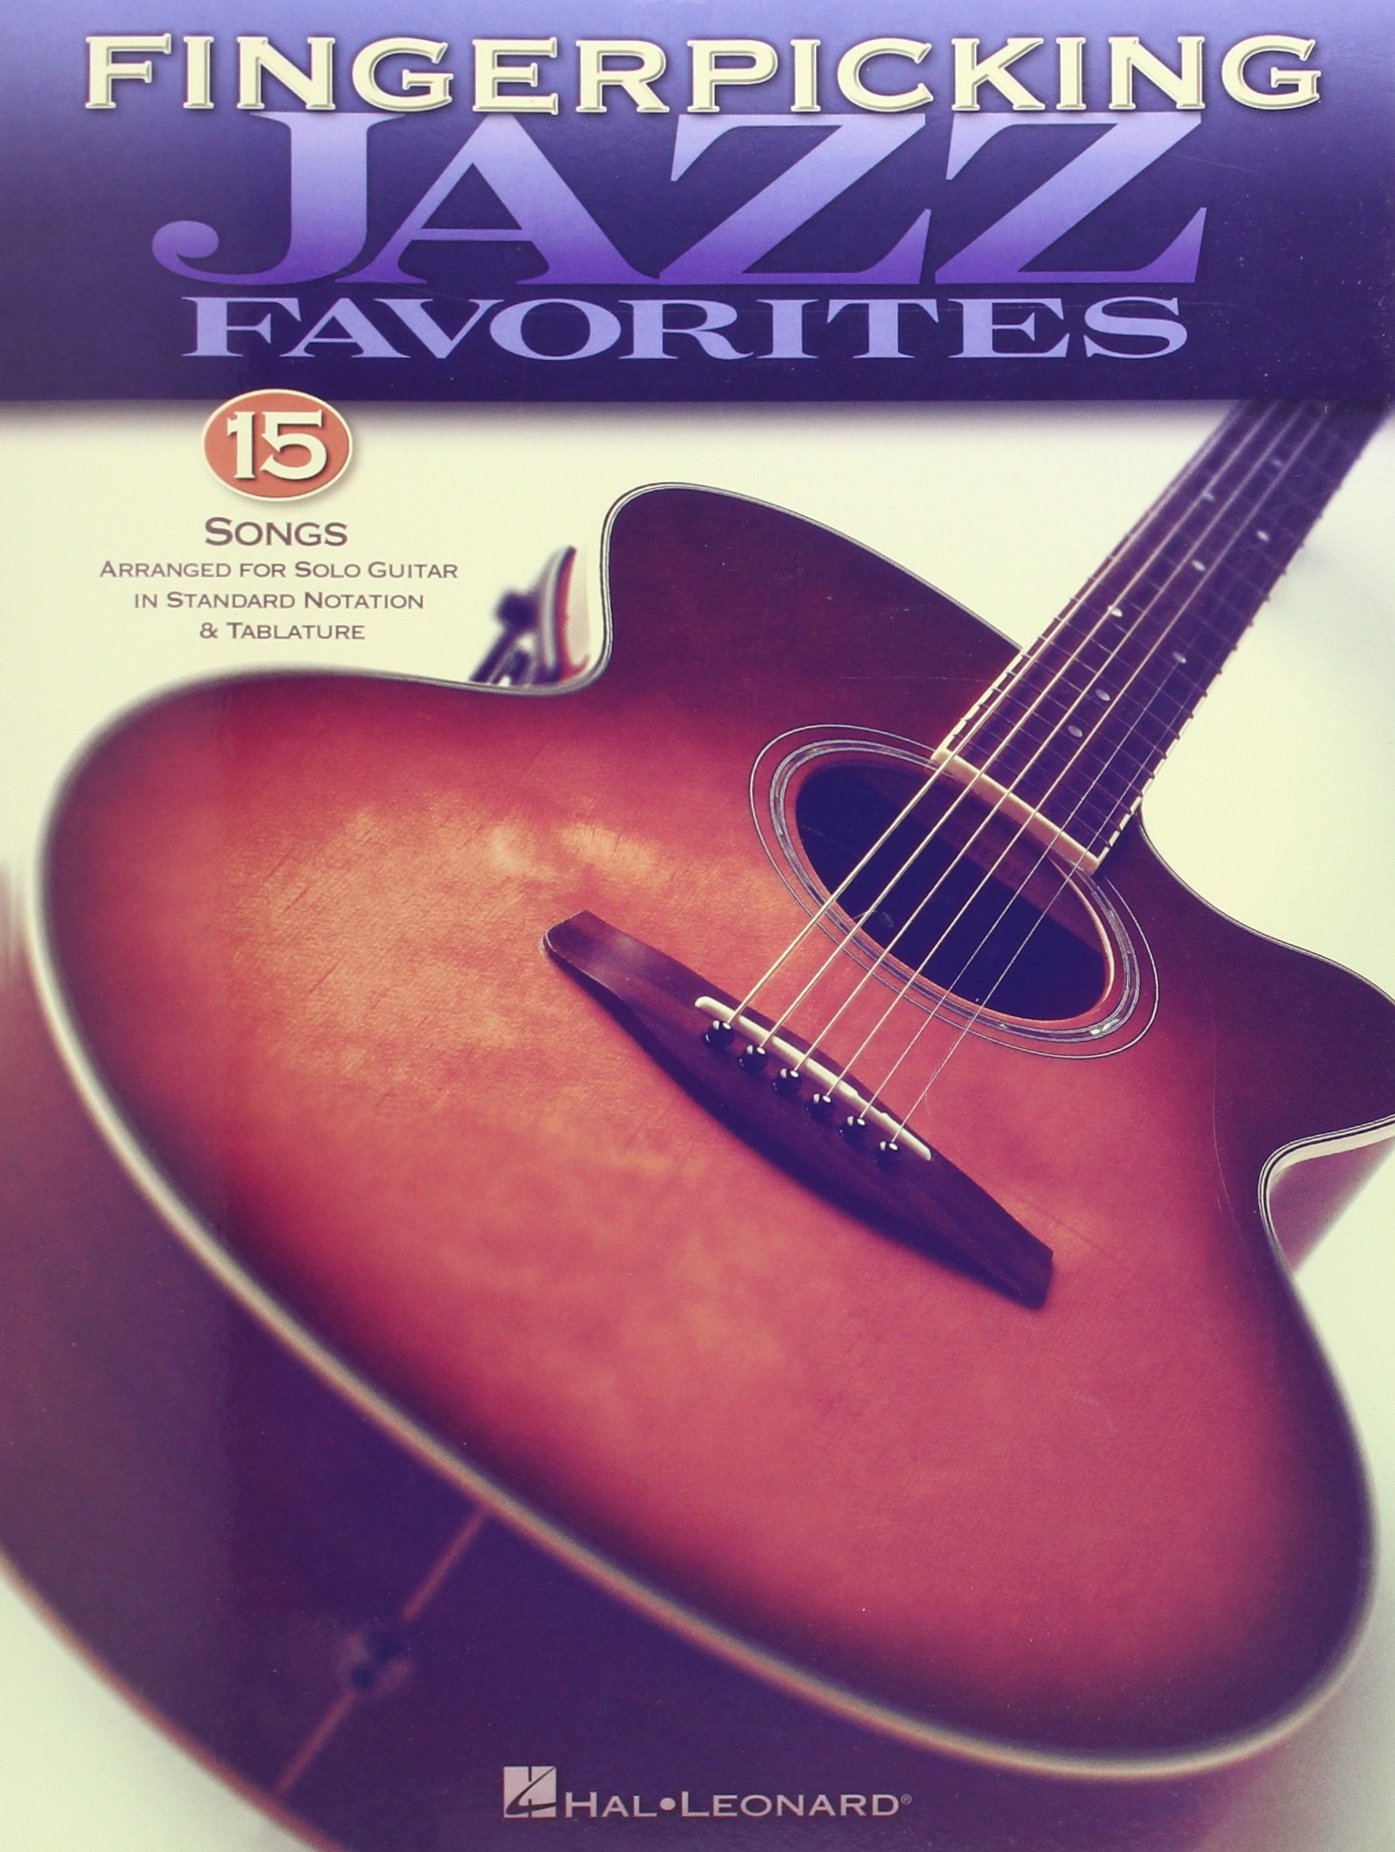 Fingerpicking Jazz Favorites PDF